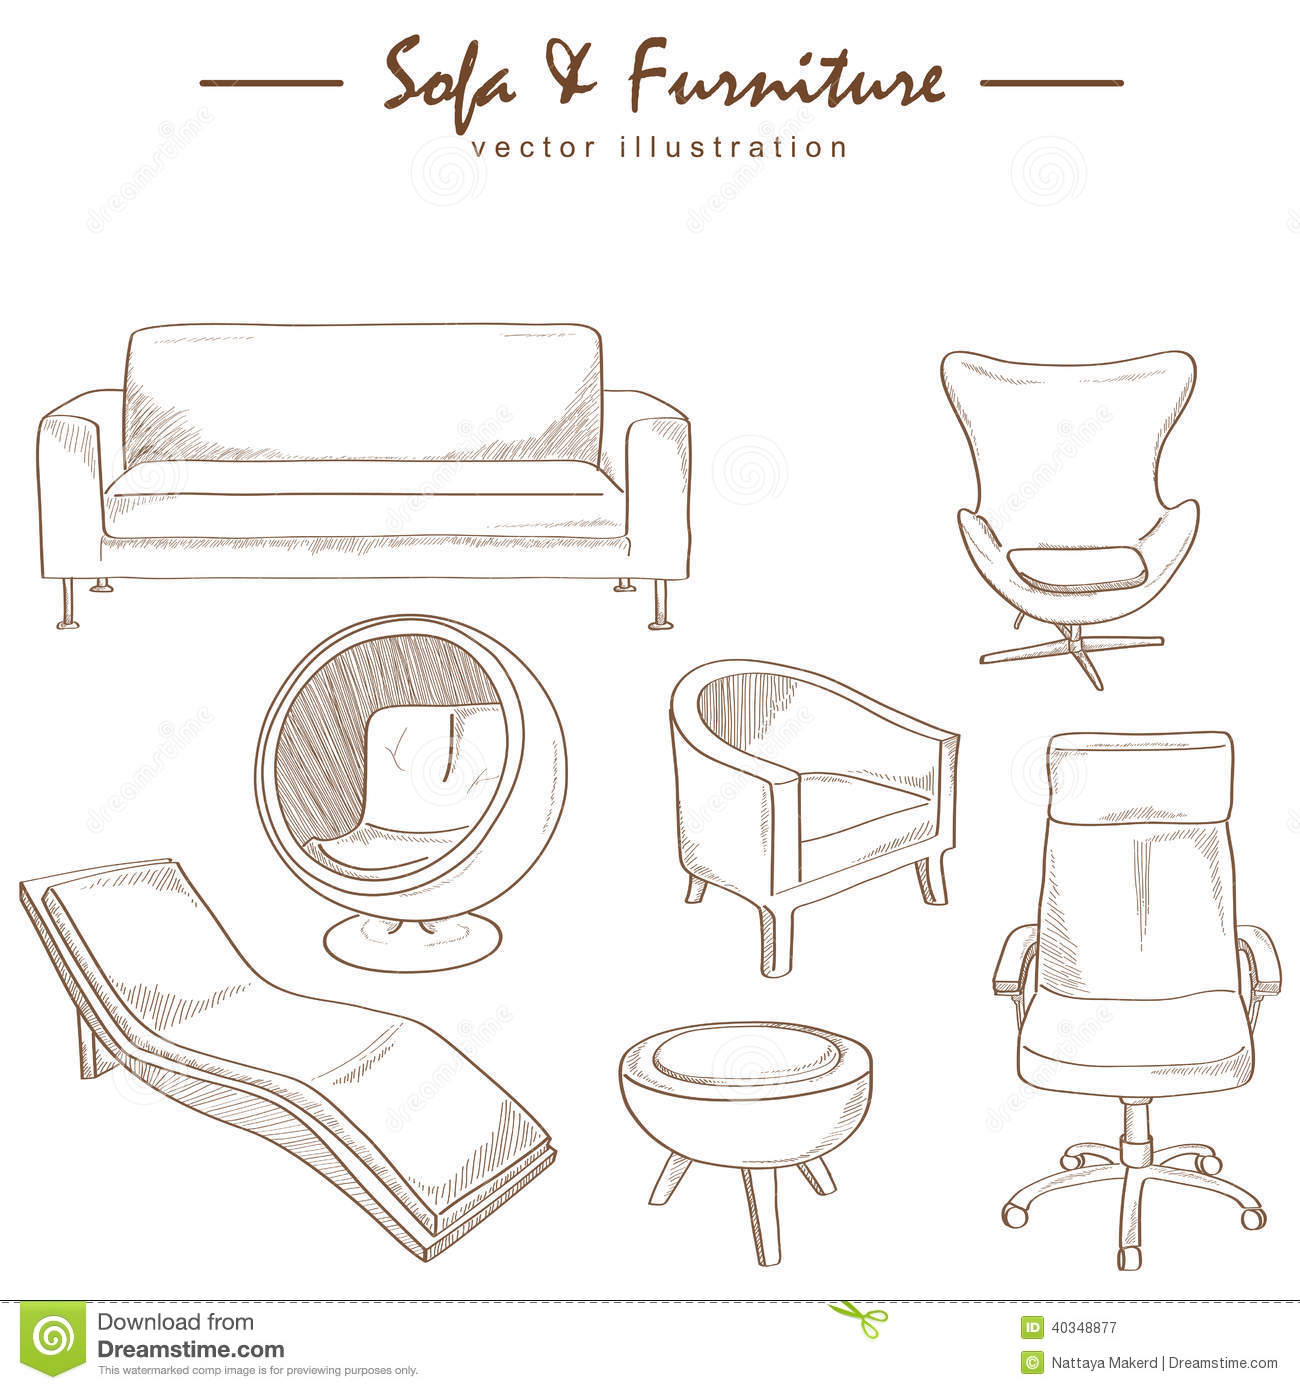 Furniture collection sketch drawing vector stock vector for Furniture sketch design